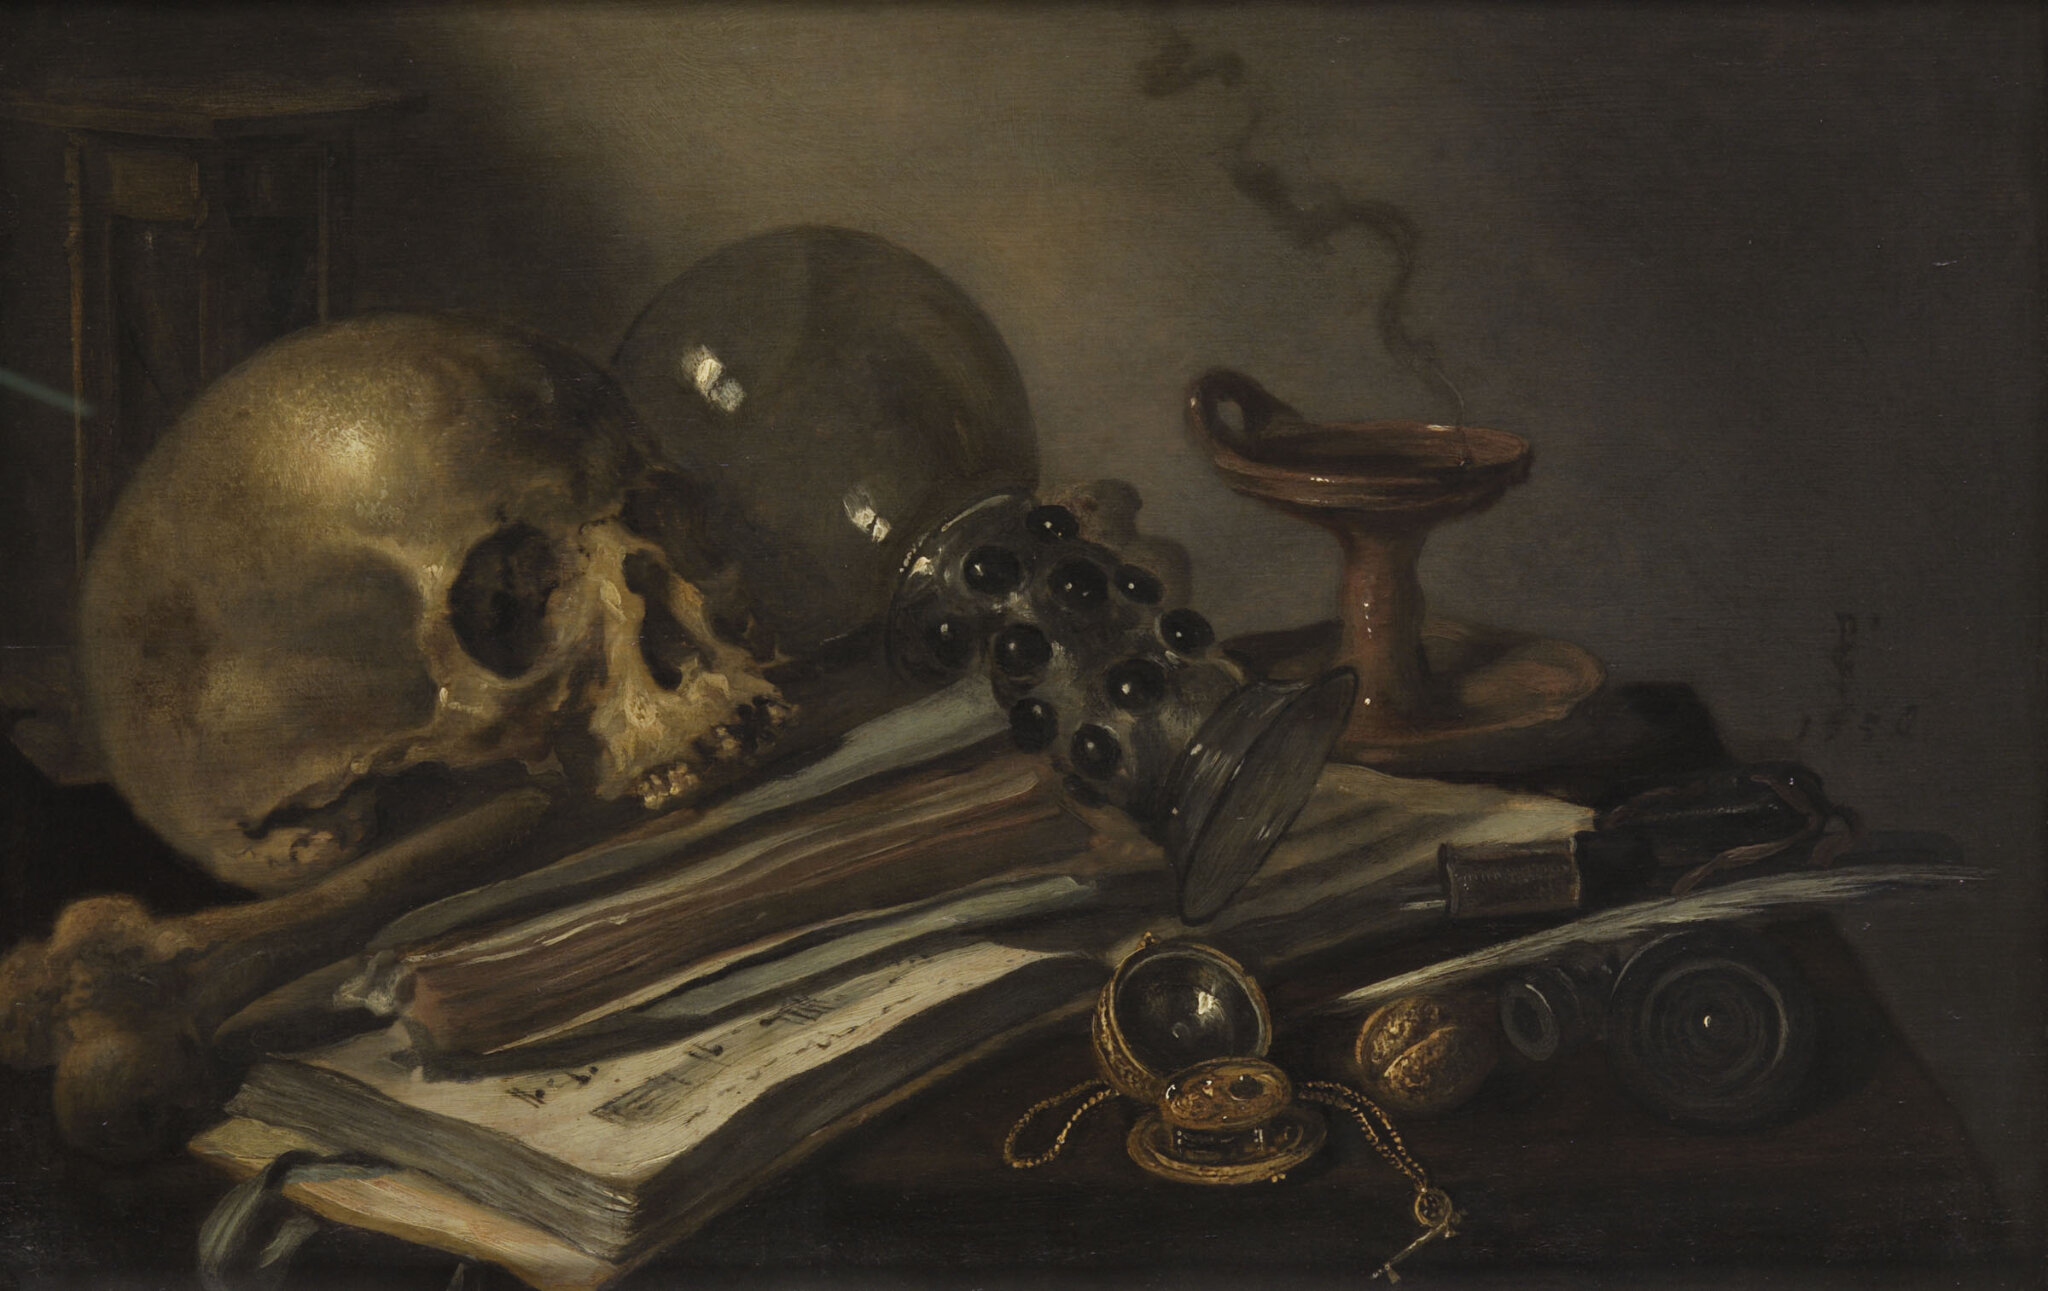 Pieter Claesz, Vanitas, Dated 1656, Oil on oak table, 39.5 cm × 60.5 cm, Courtesy KHM-Museumsverband. ------WebKitFormBoundaryyJpH1sqQv1PgeP6g Content-Disposition: form-data; name=